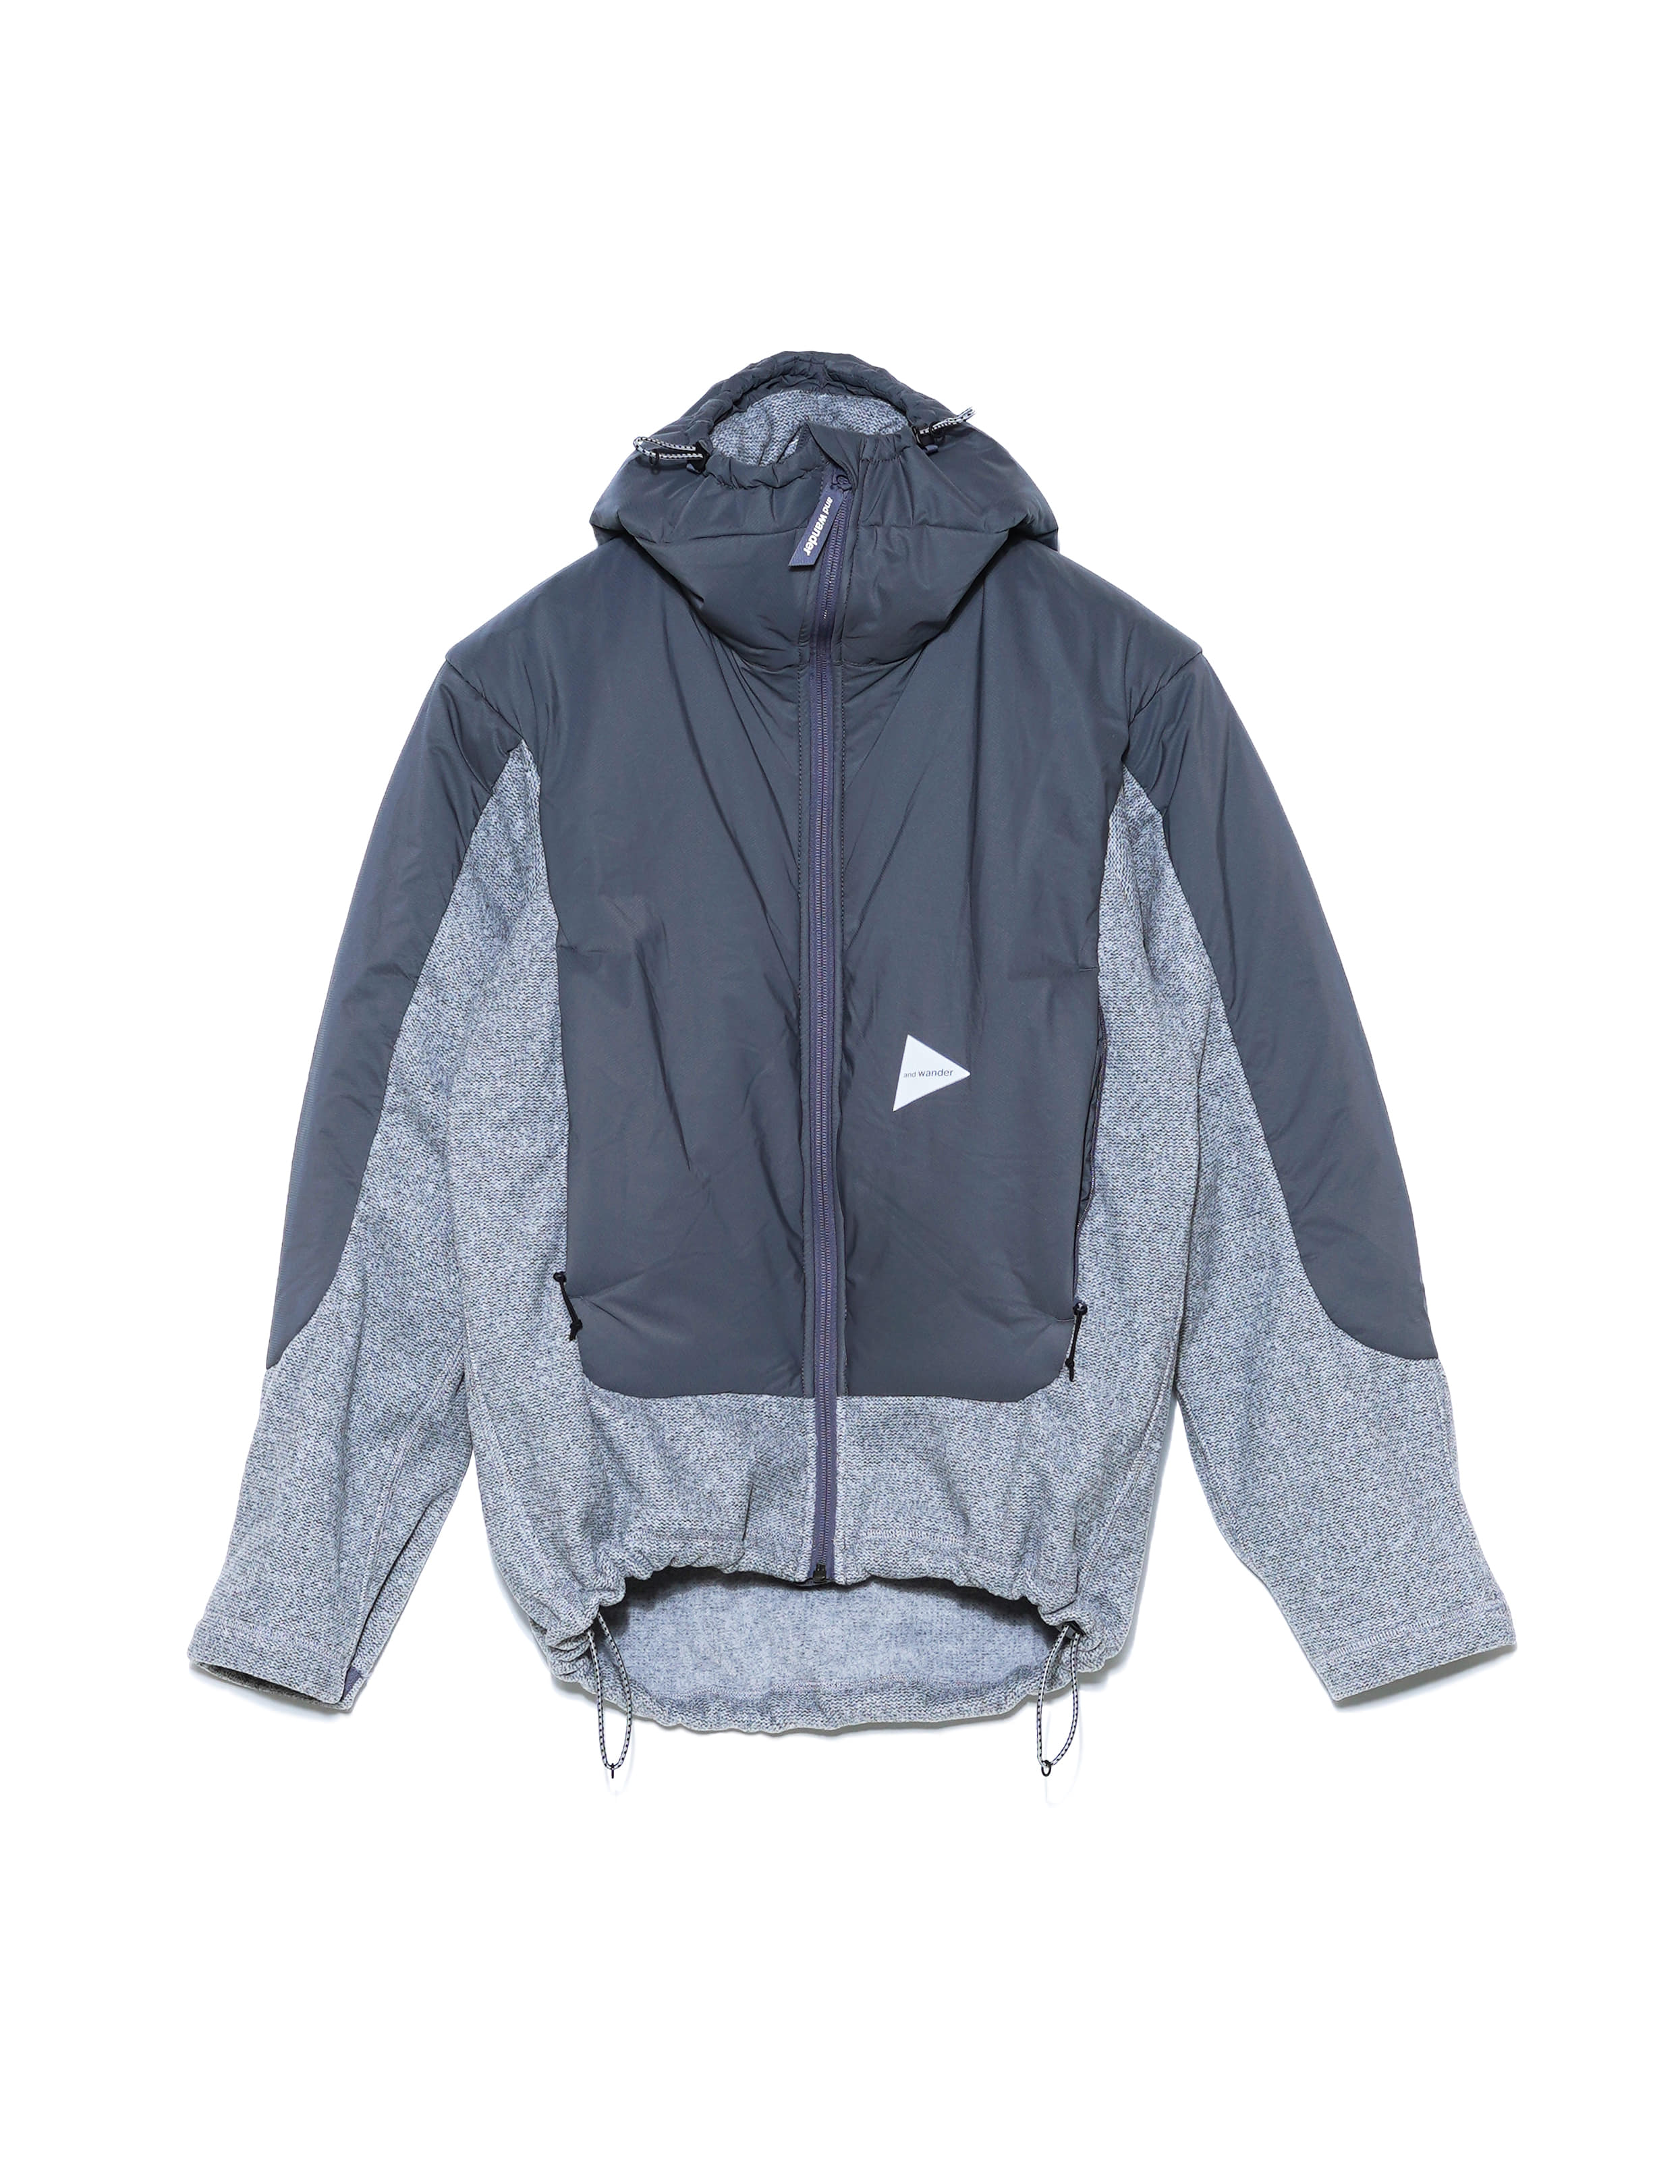 TOP FLEECE JACKET (GRAY)